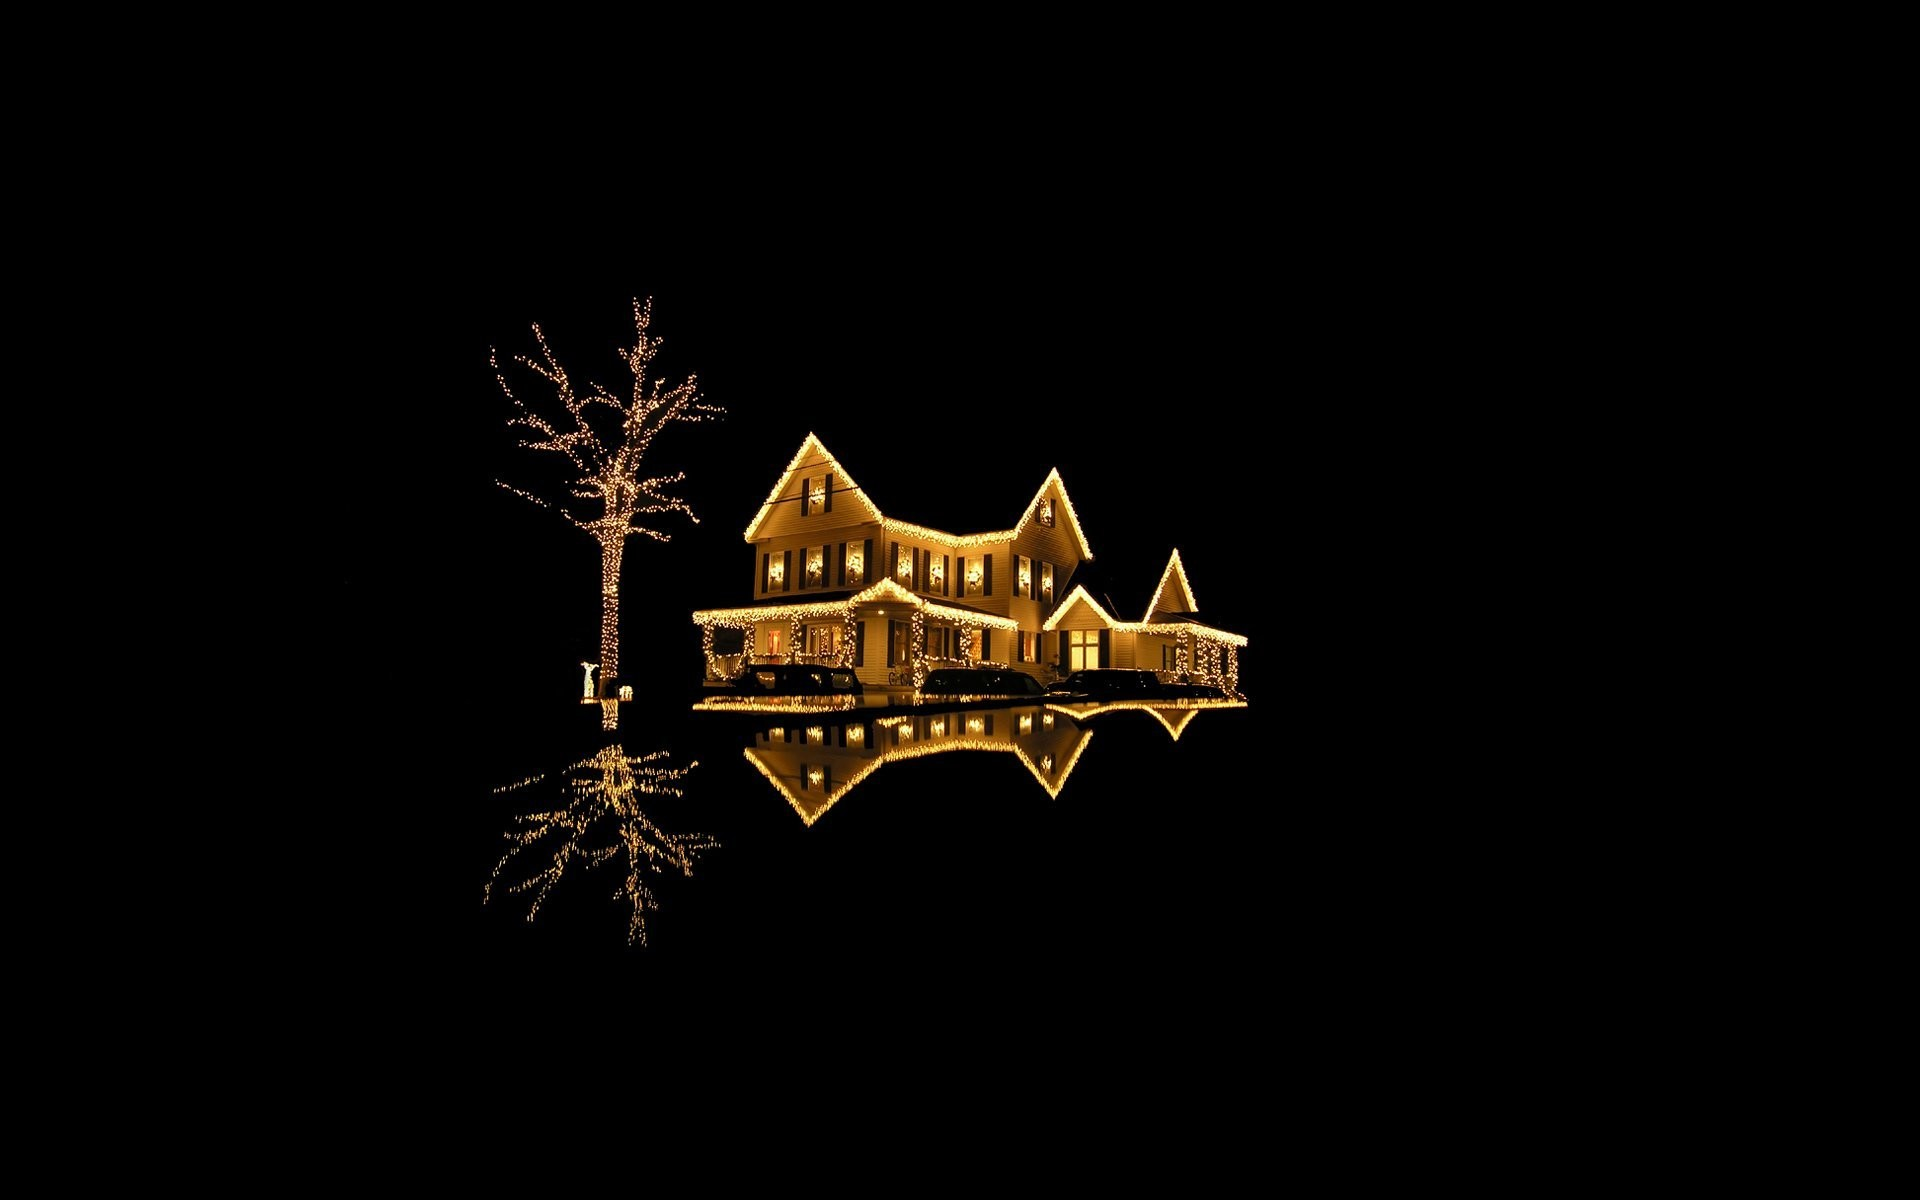 new year new year holiday merry christmas black background house  accommodation building house light lights gold